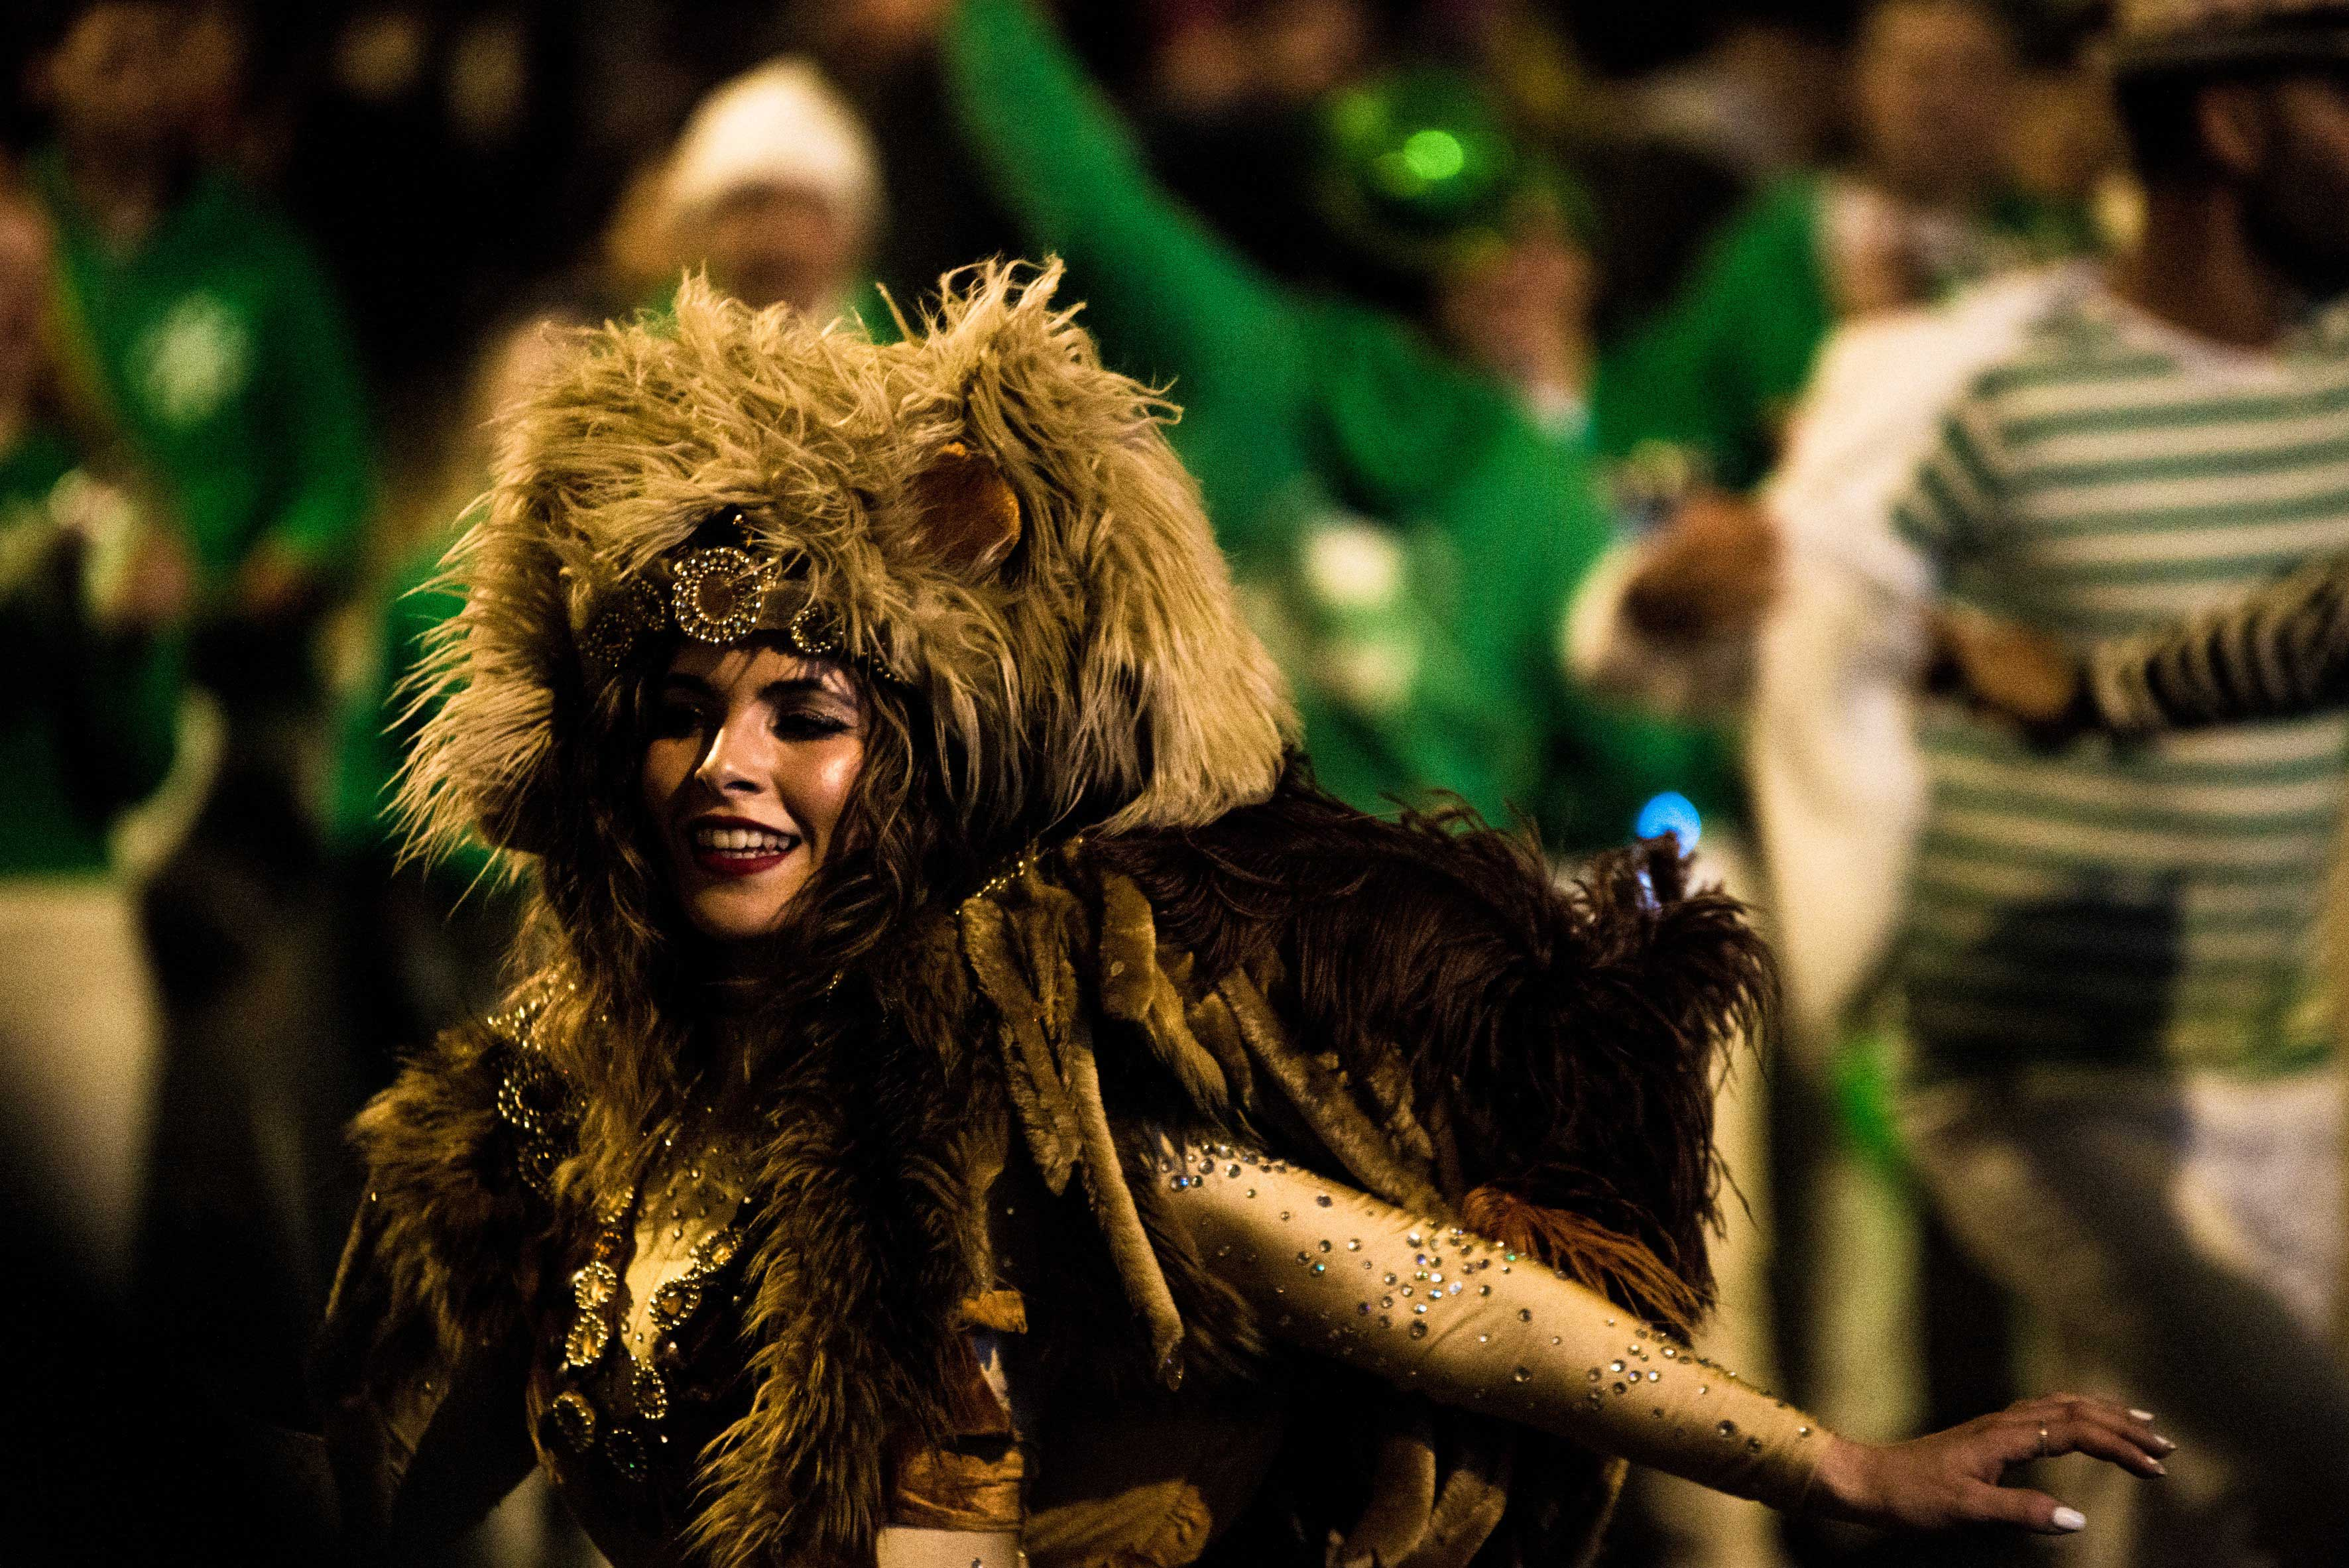 Winter carnival to celebrate founding of first Borough of Culture in London